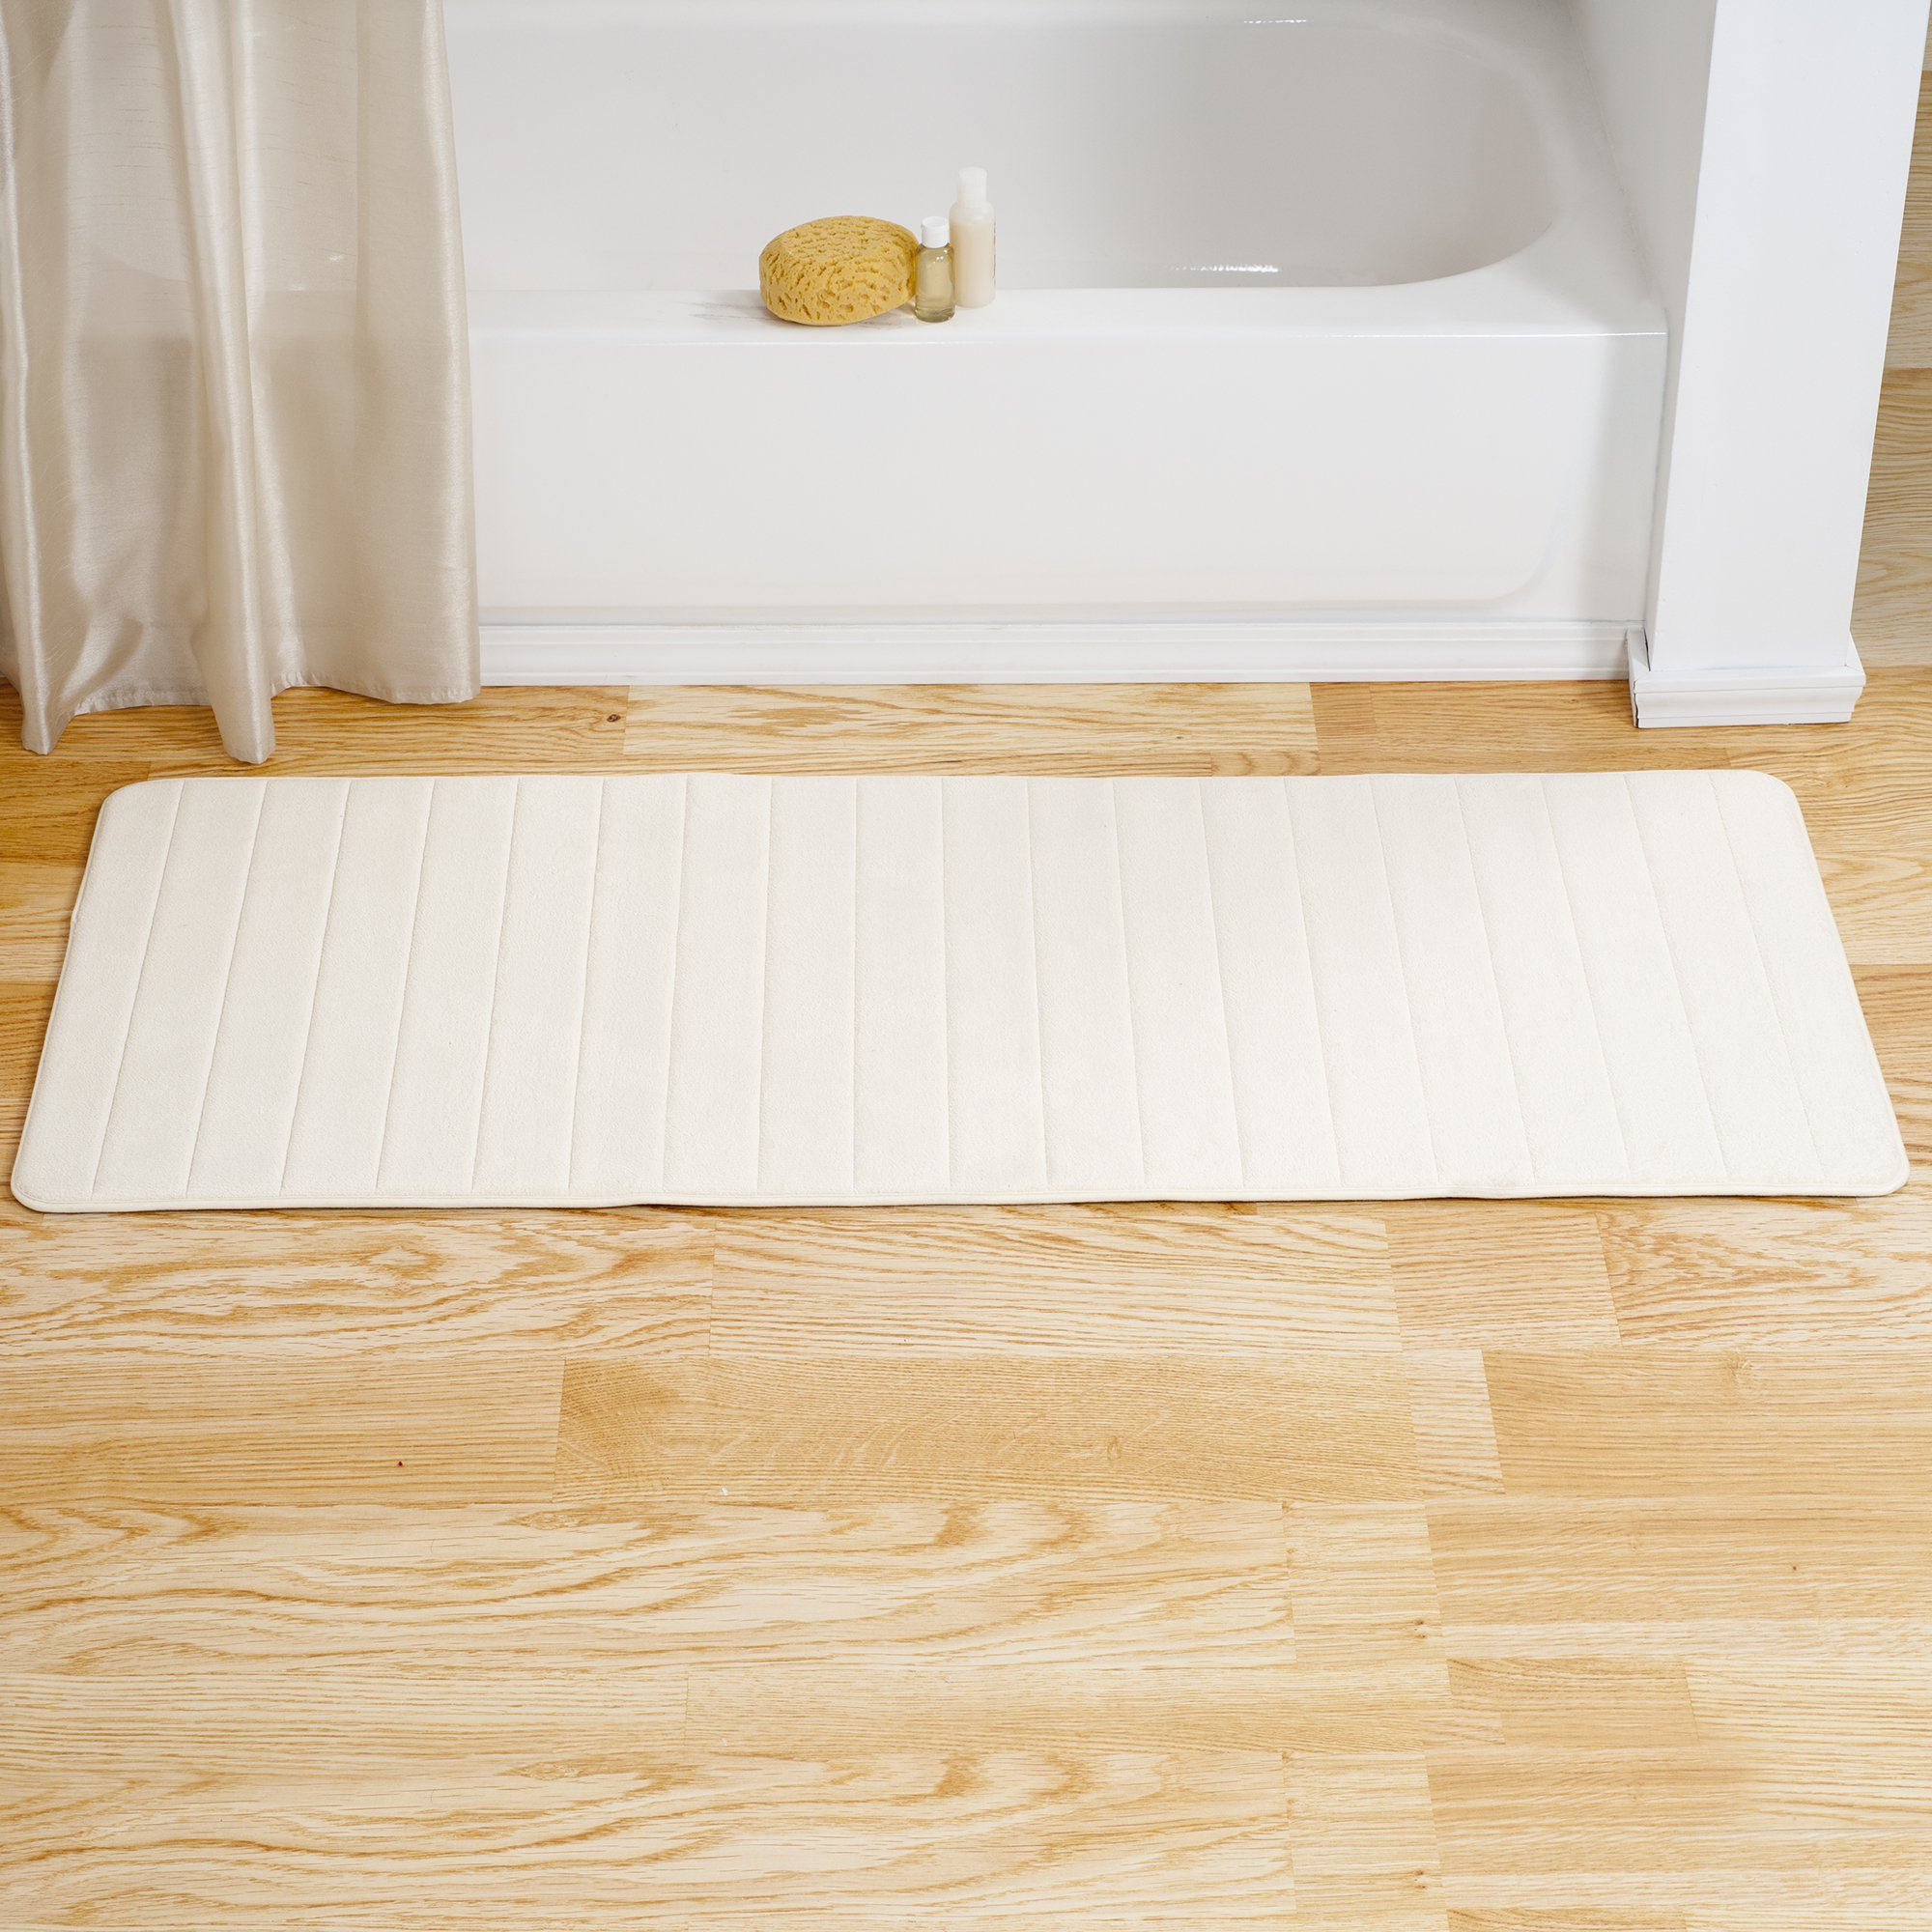 Lavish Home Memory Foam Striped Extra Long Bath Mat, 24 by 60'', White